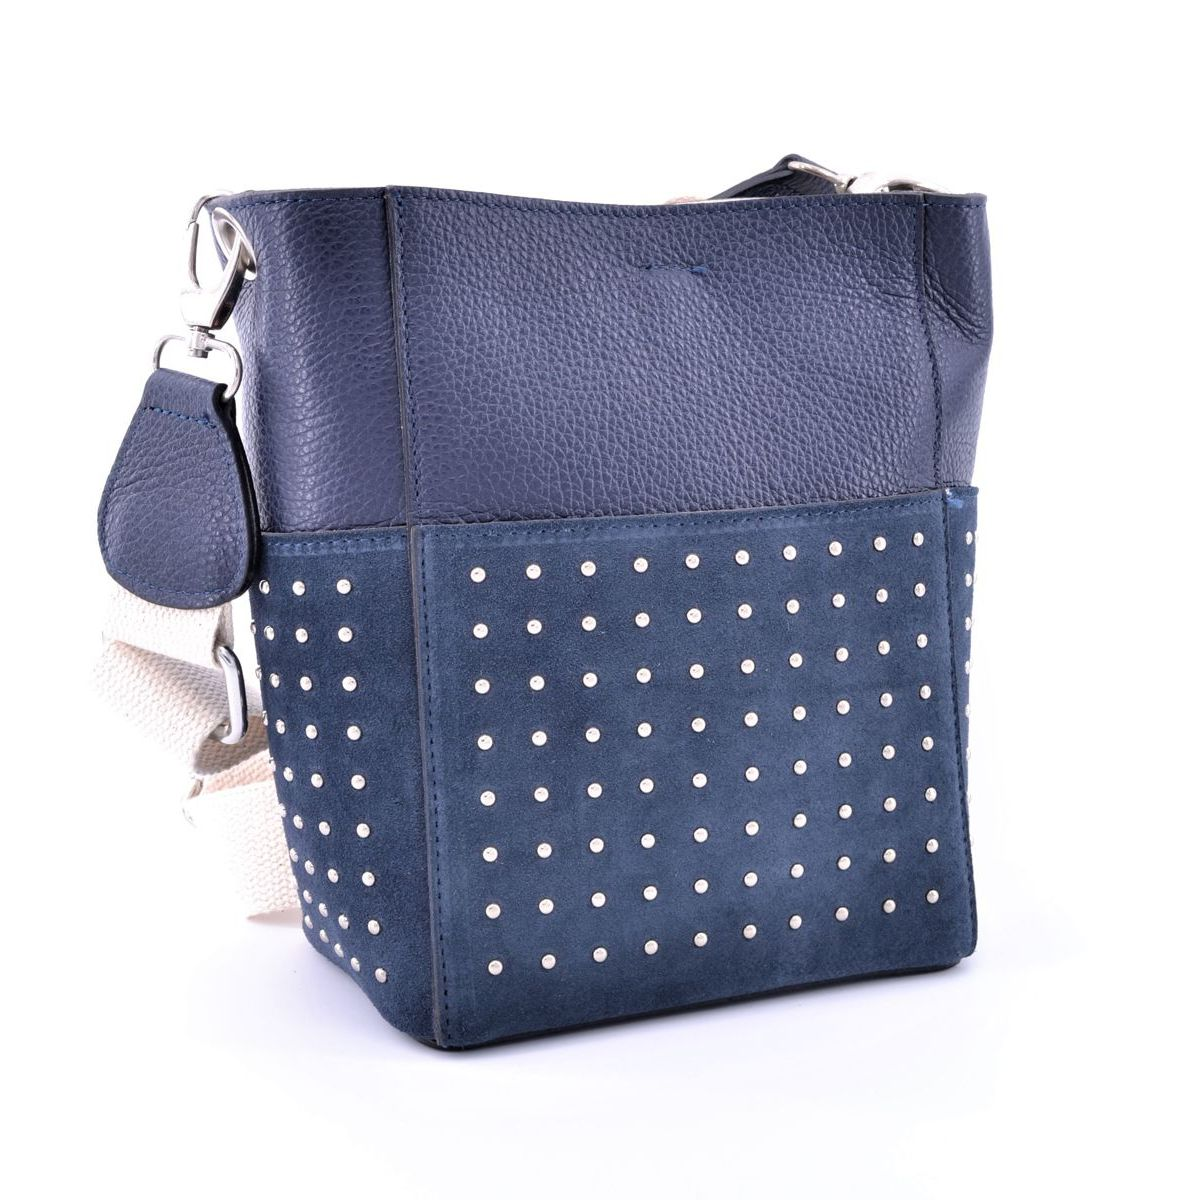 Studded leather bucket with cotton shoulder strap Blue BRASS Workshop